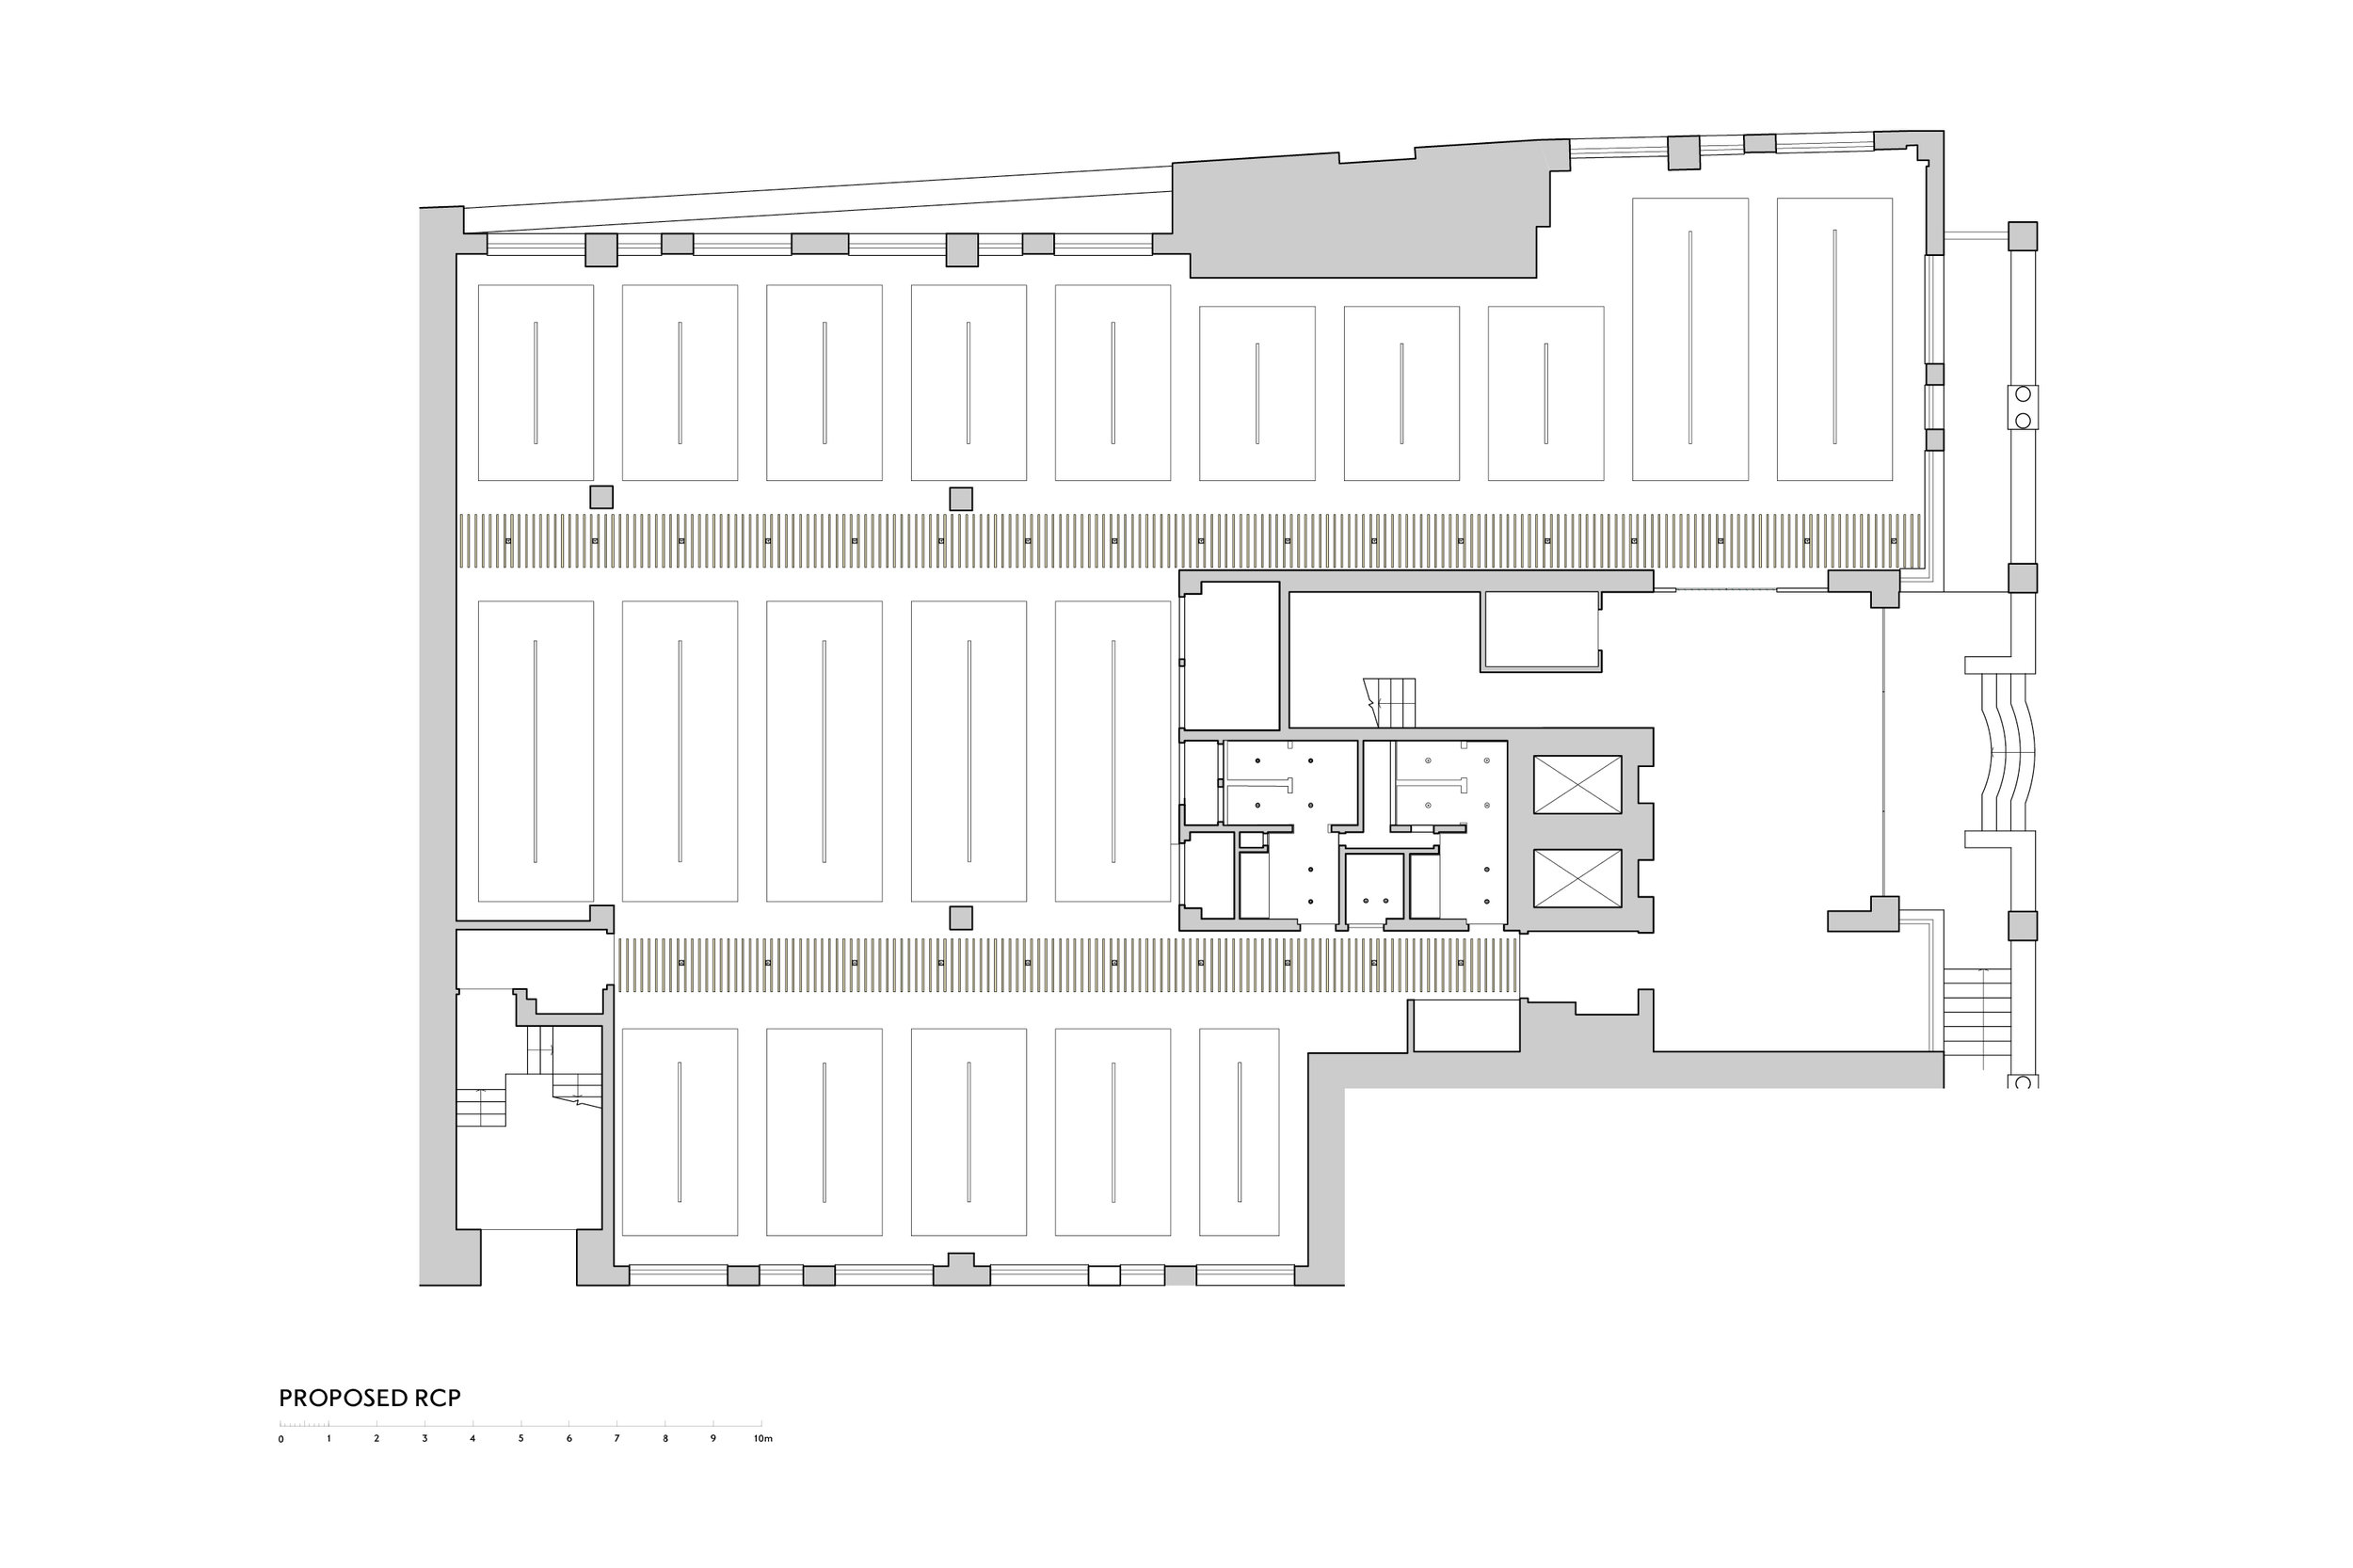 Reflected Ceiling Plan of Commercial Office Fit Out